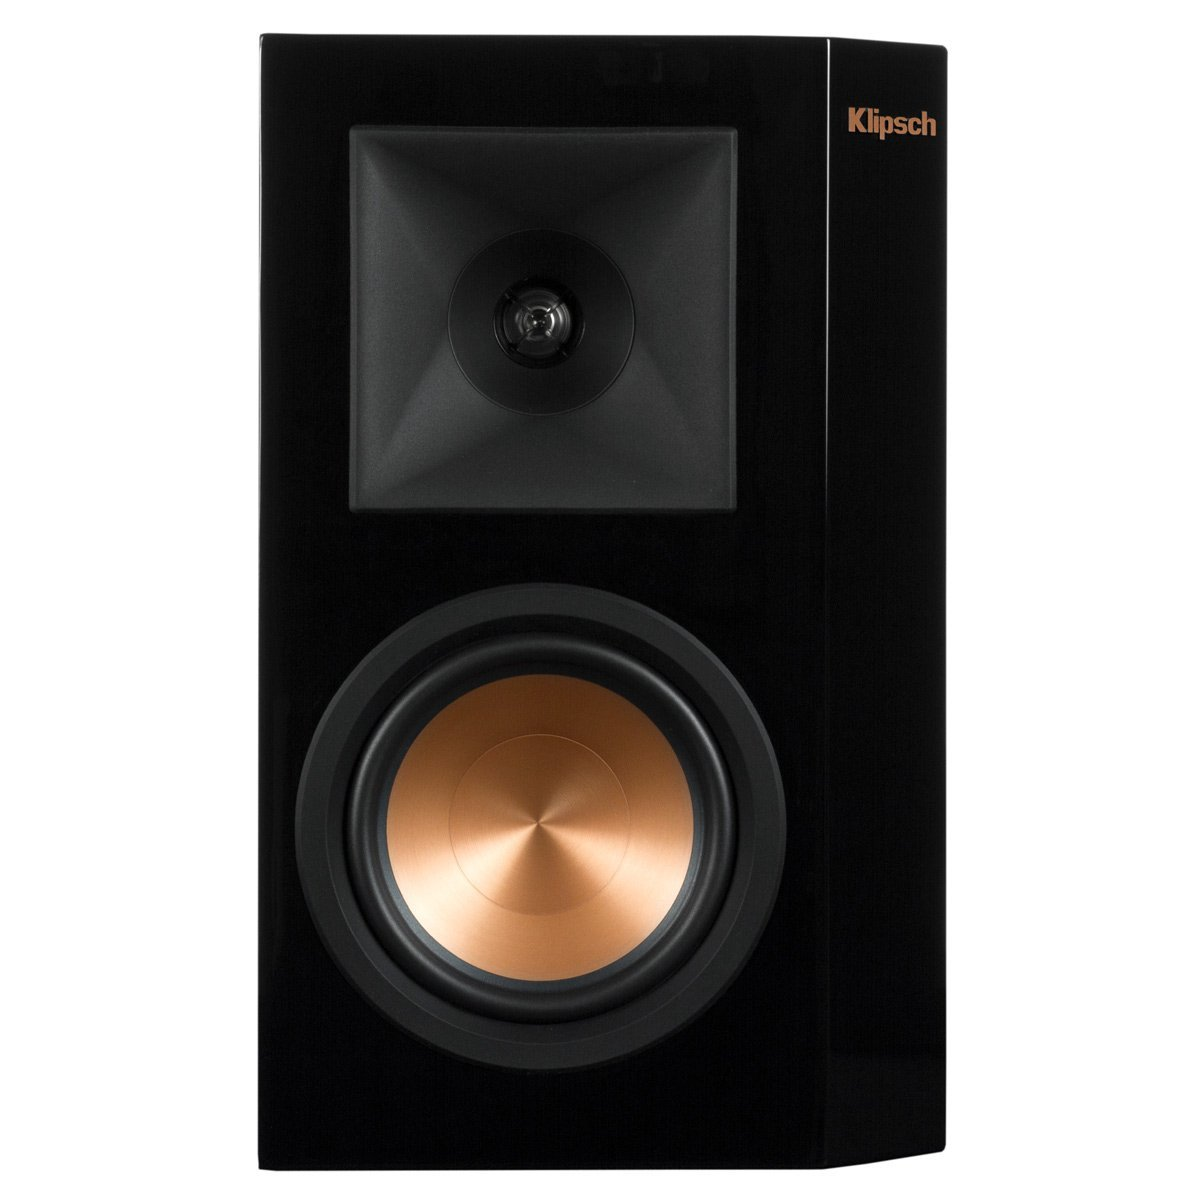 Klipsch RP-250S Piano Black Surround Speaker by Klipsch